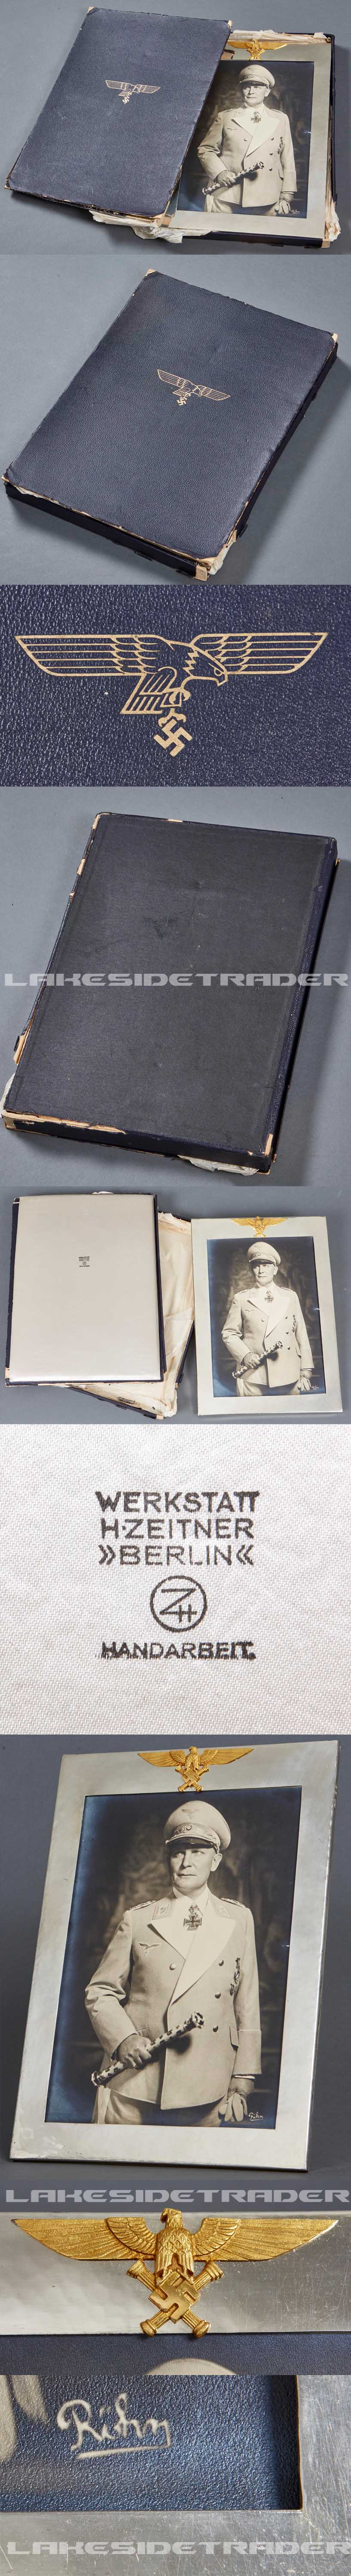 Reichsmarshall Hermann Goering: Large Silver Gift Frame with Photo